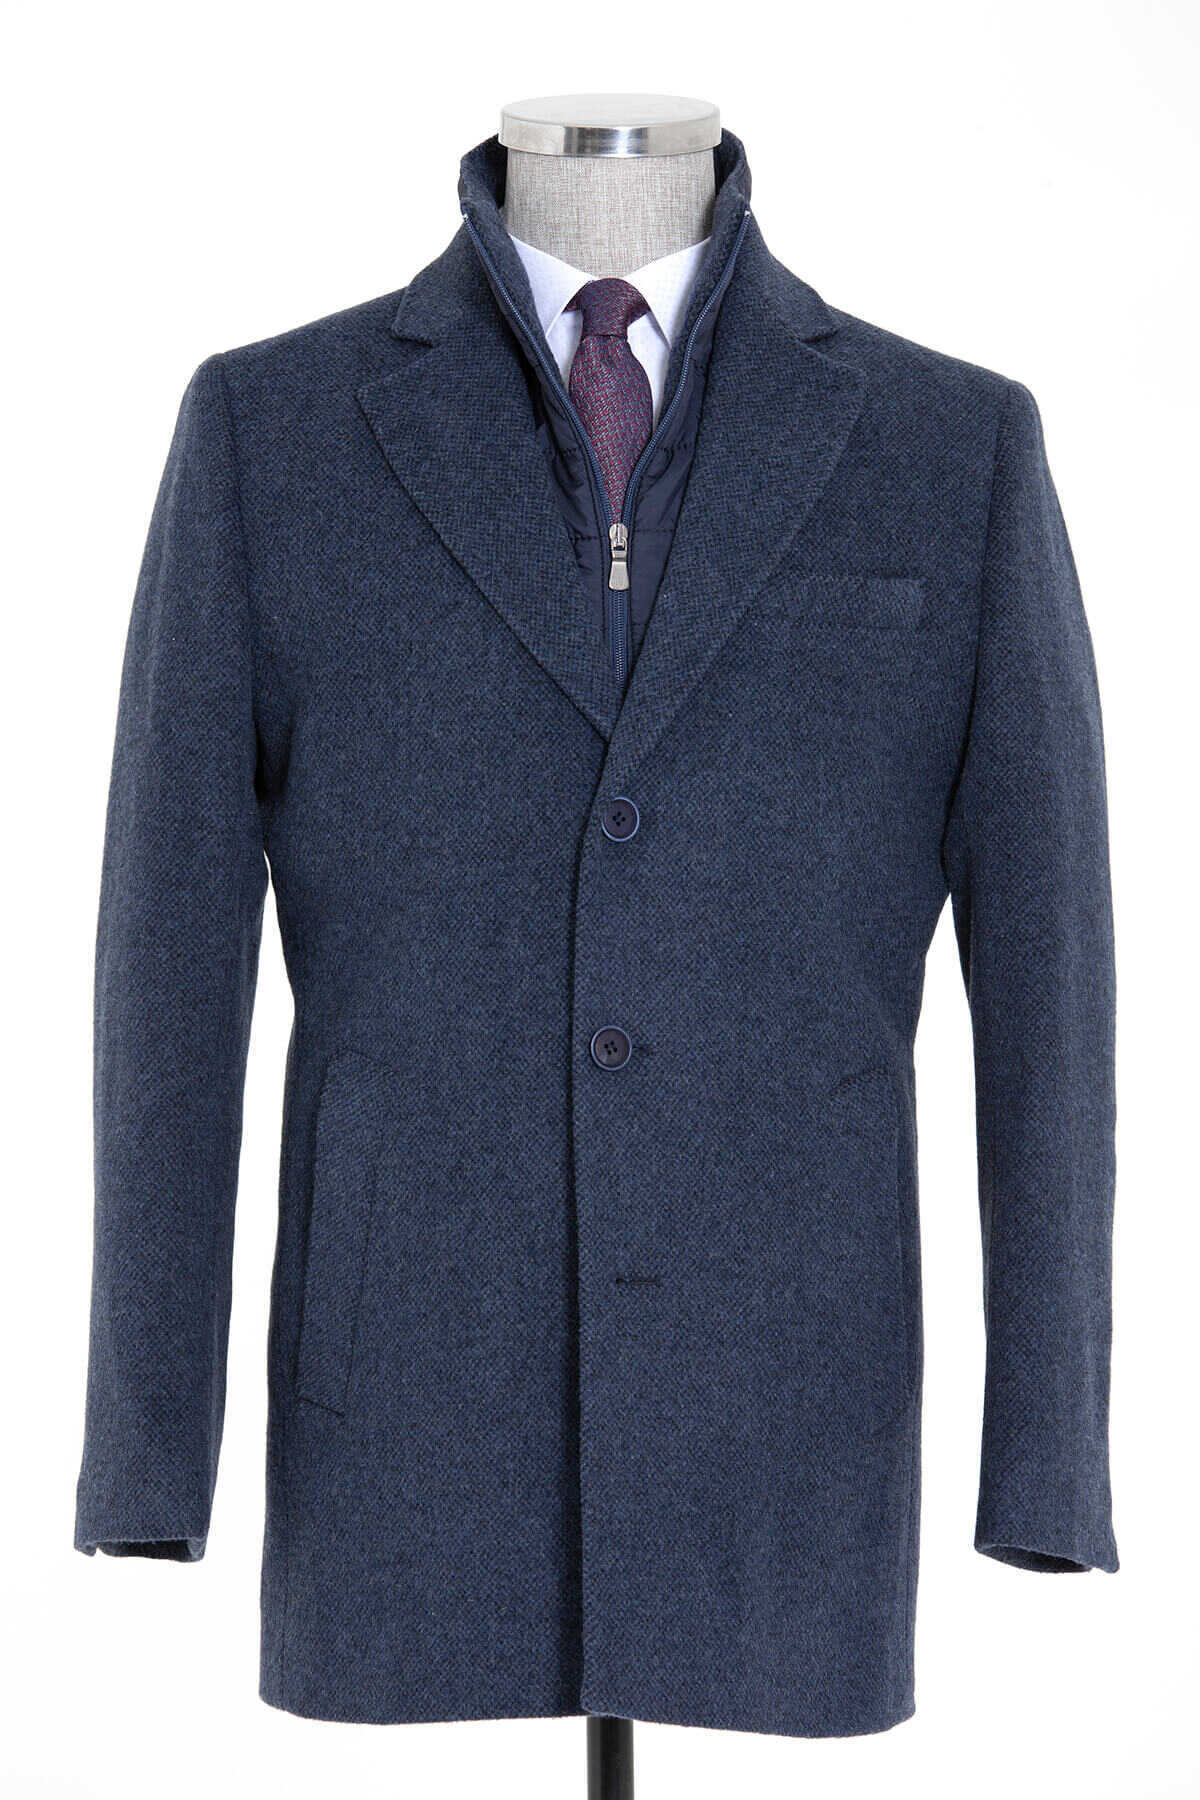 - Navy Patterned Slim Fit Coat